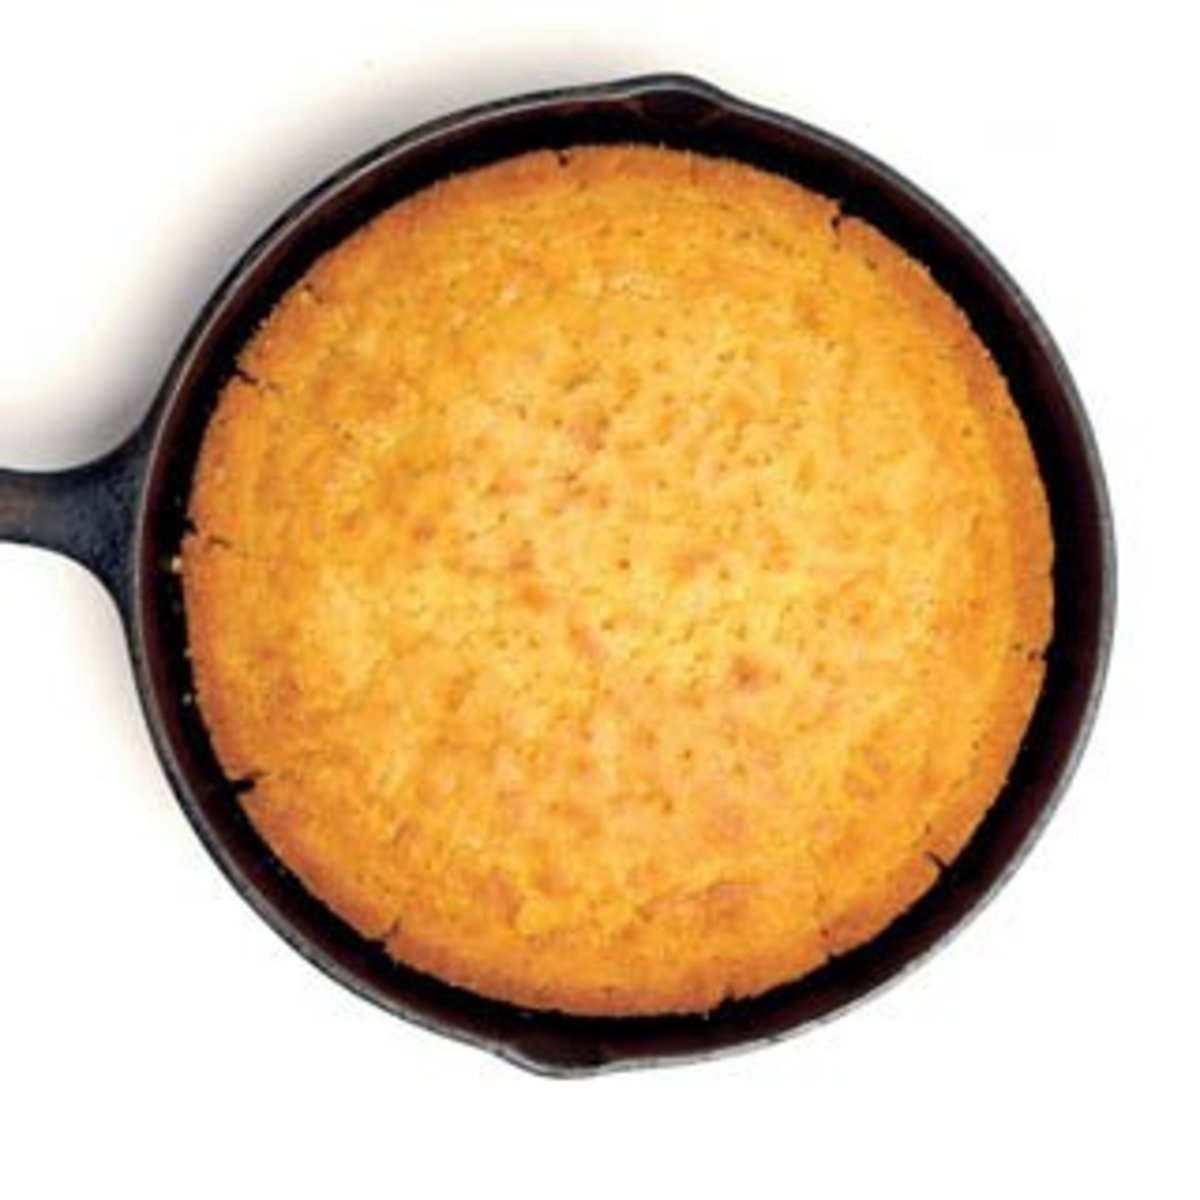 Gotta have cornbread with chicken and dumplings!